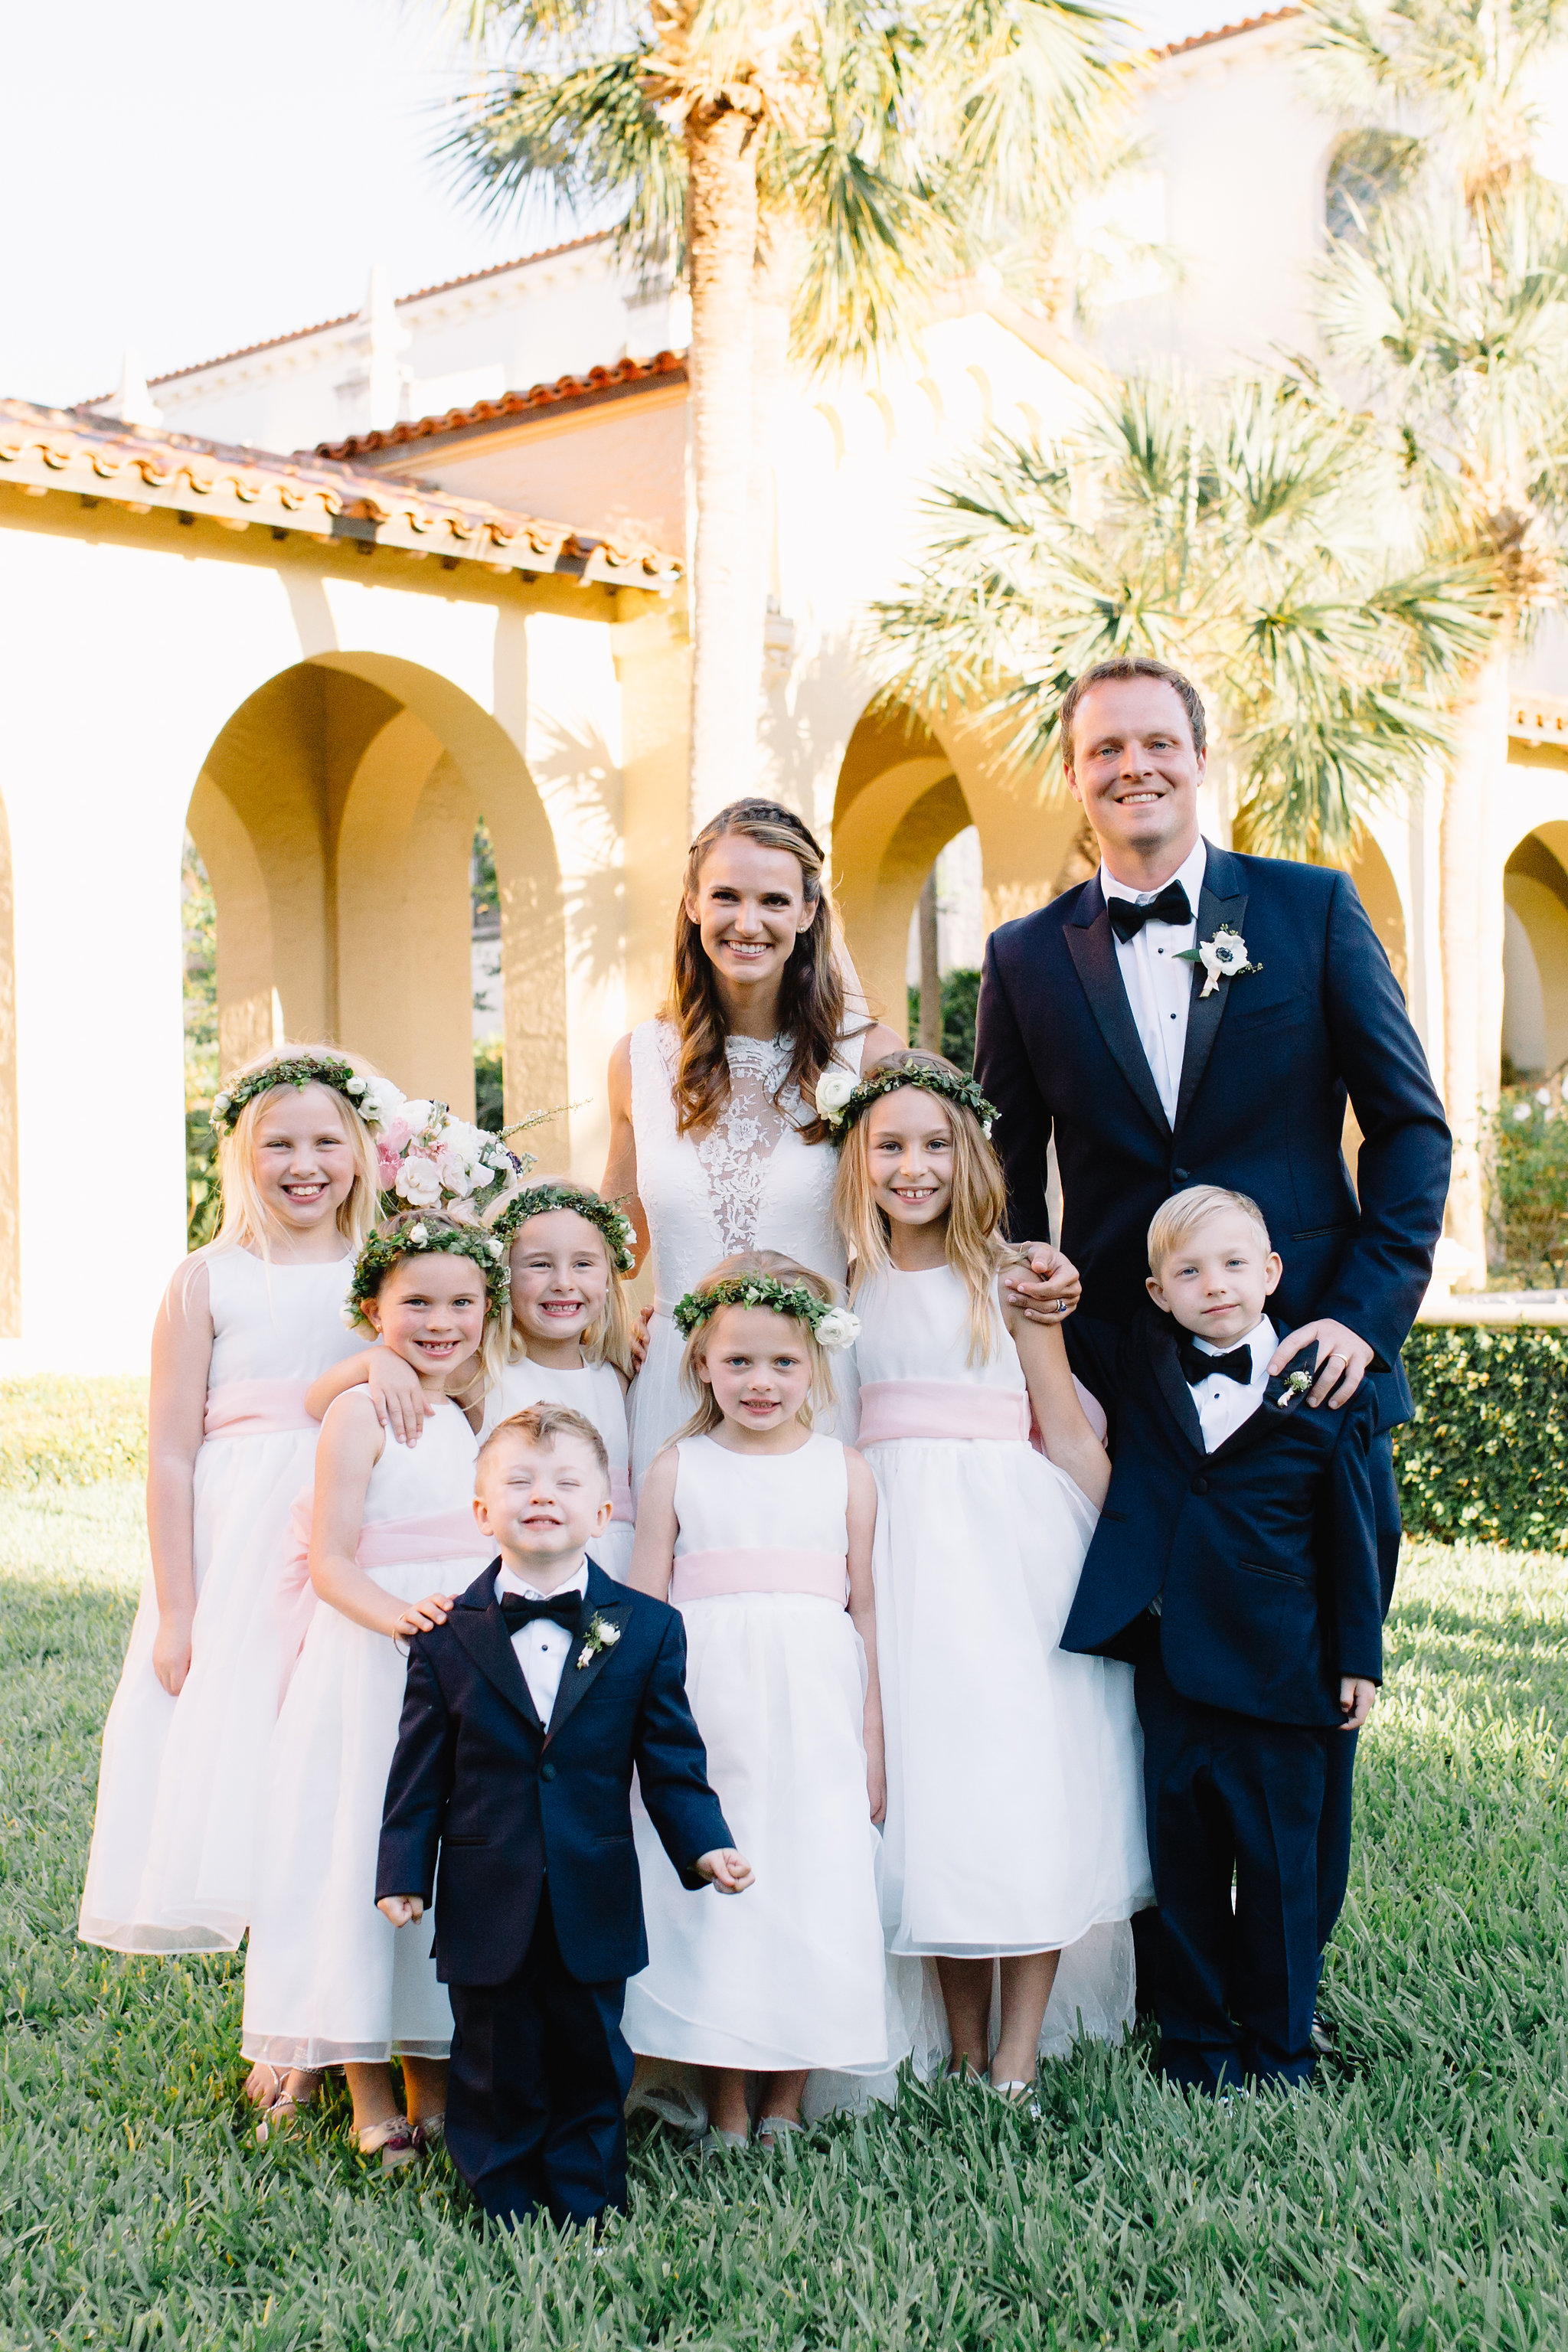 Ring bearers and flower girls complete the wedding party